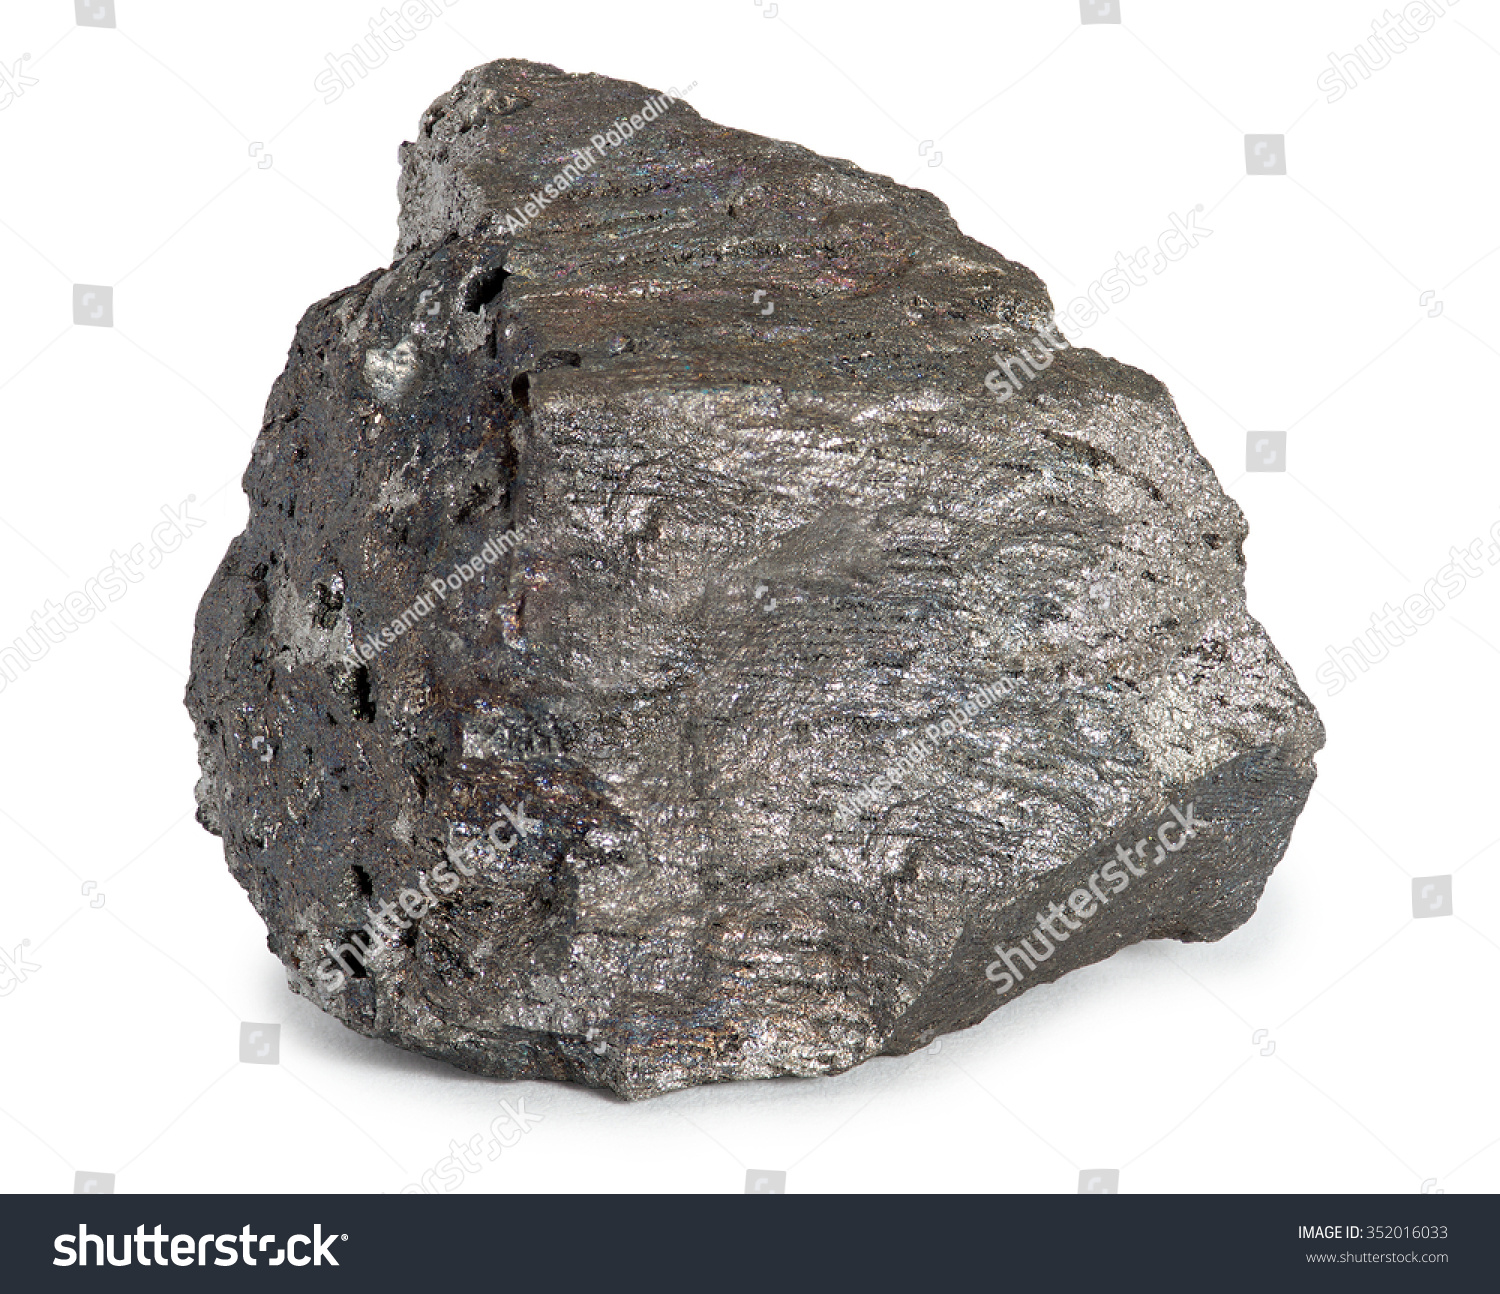 What are ore minerals